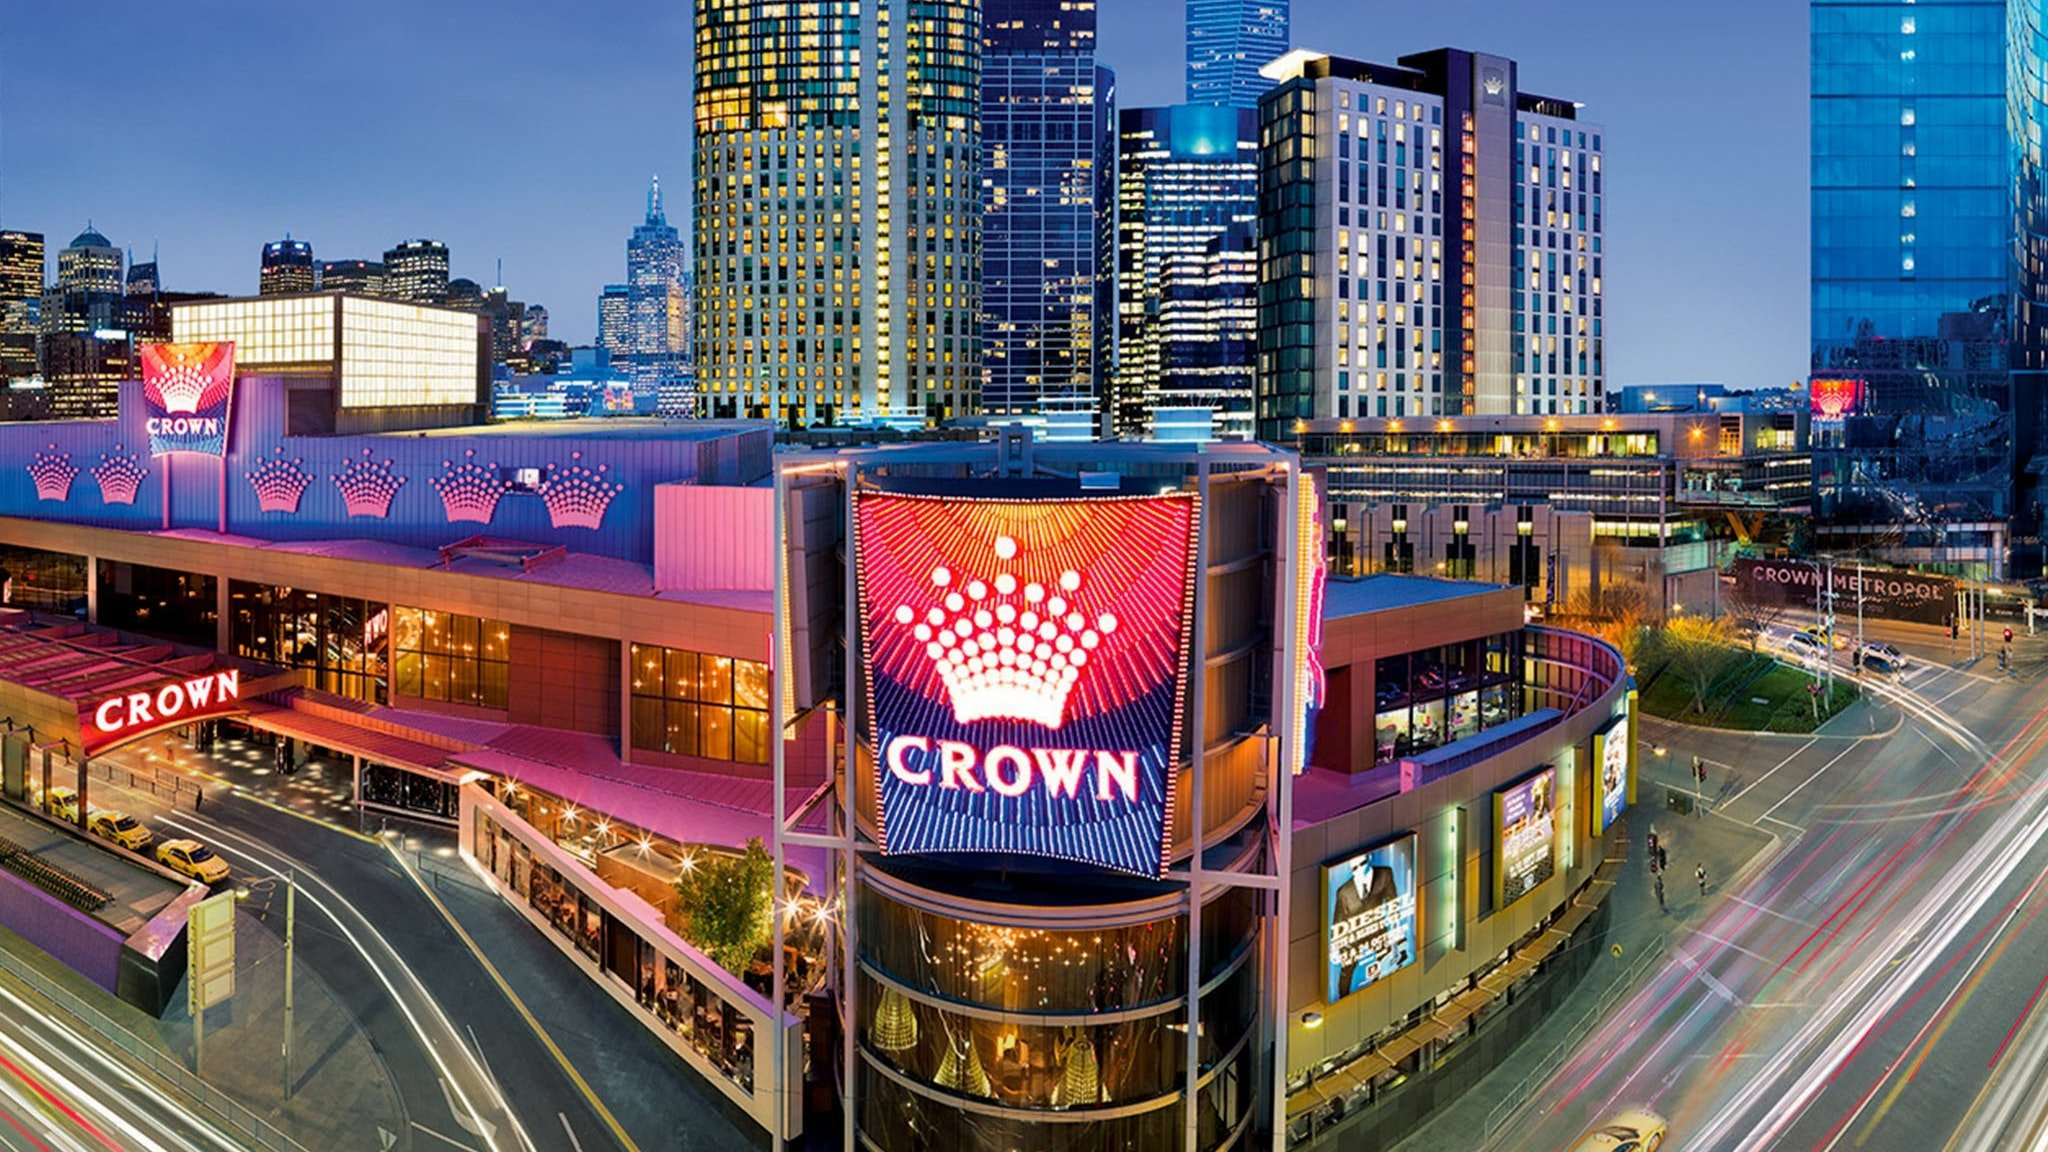 Crown casino оштрафовано за фальсификацию покерных автоматов футбол